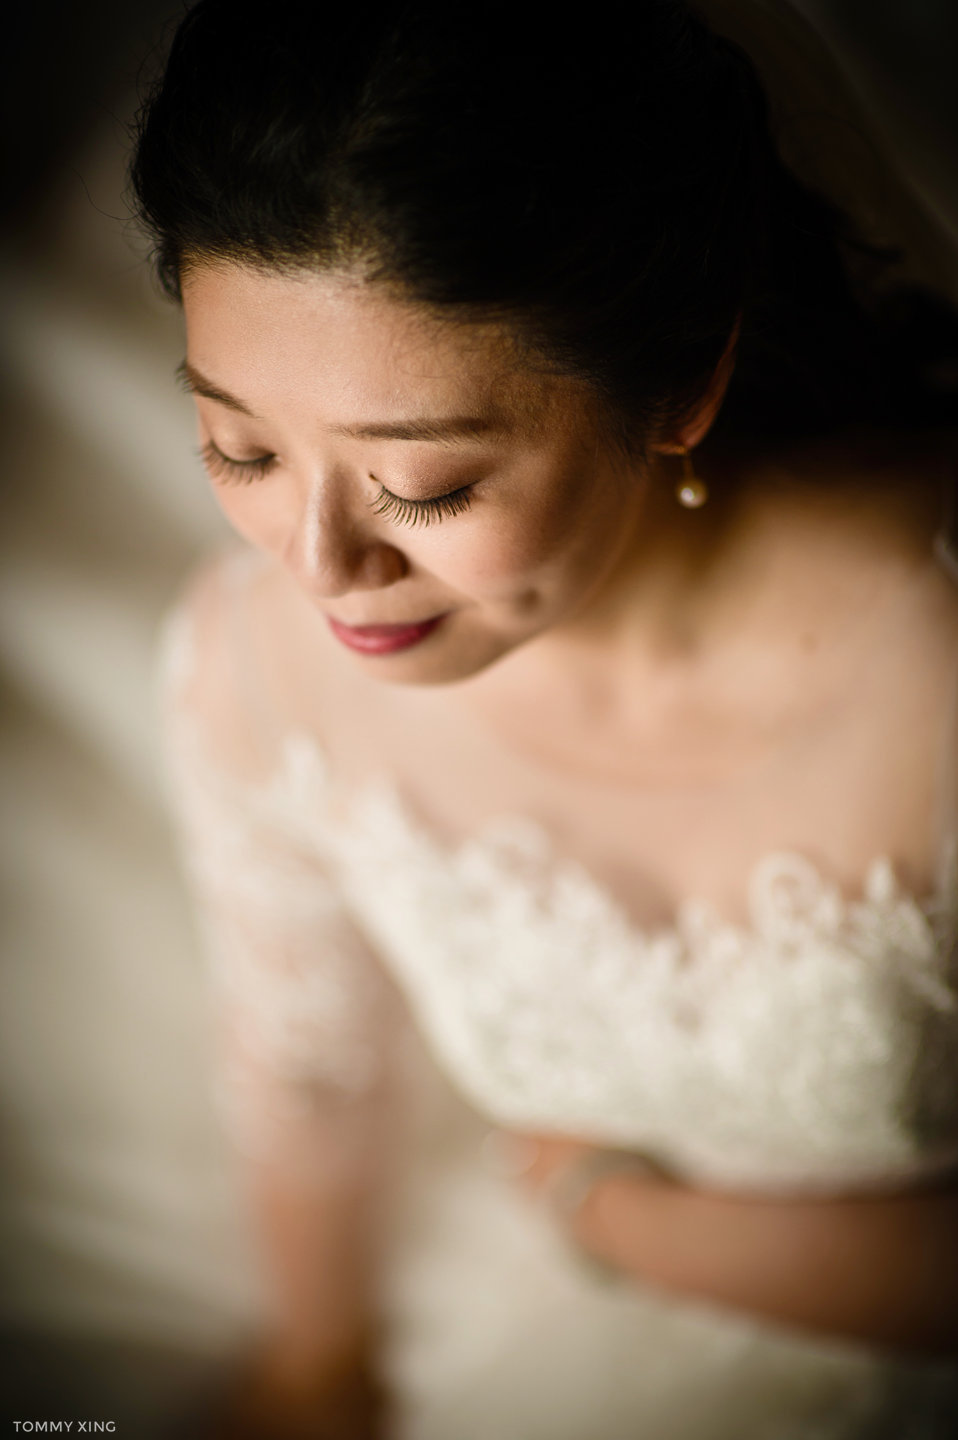 San Francisco Wedding Photography Valley Presbyterian Church WEDDING Tommy Xing Photography 洛杉矶旧金山婚礼婚纱照摄影师056.jpg